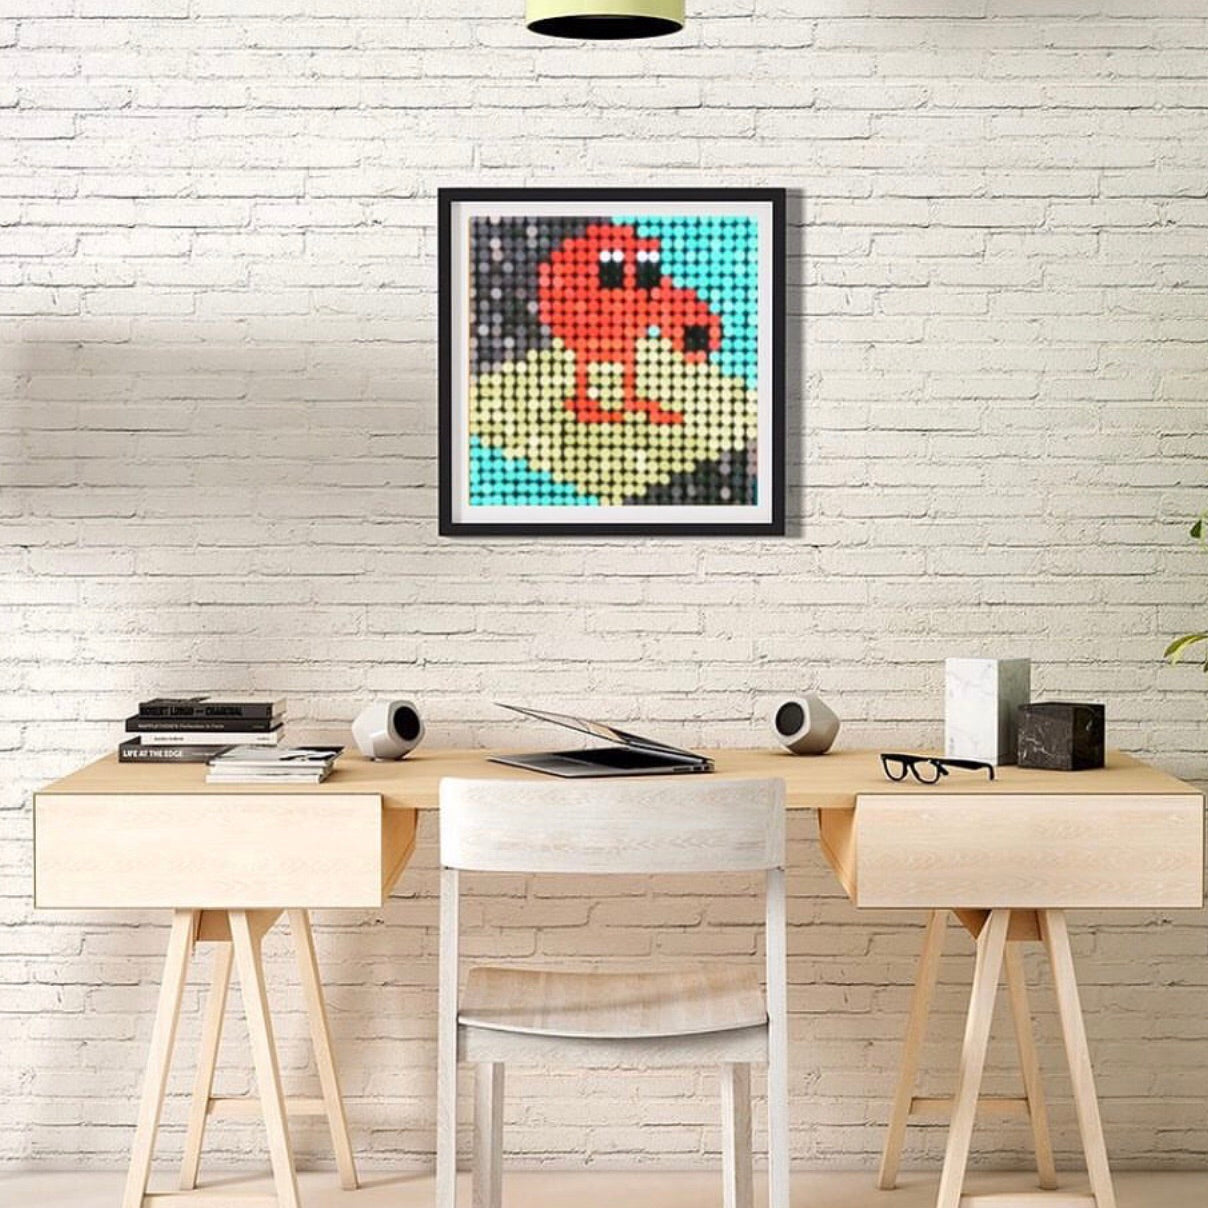 8bit Qbert Pixel Wall Art by Pix Perfect